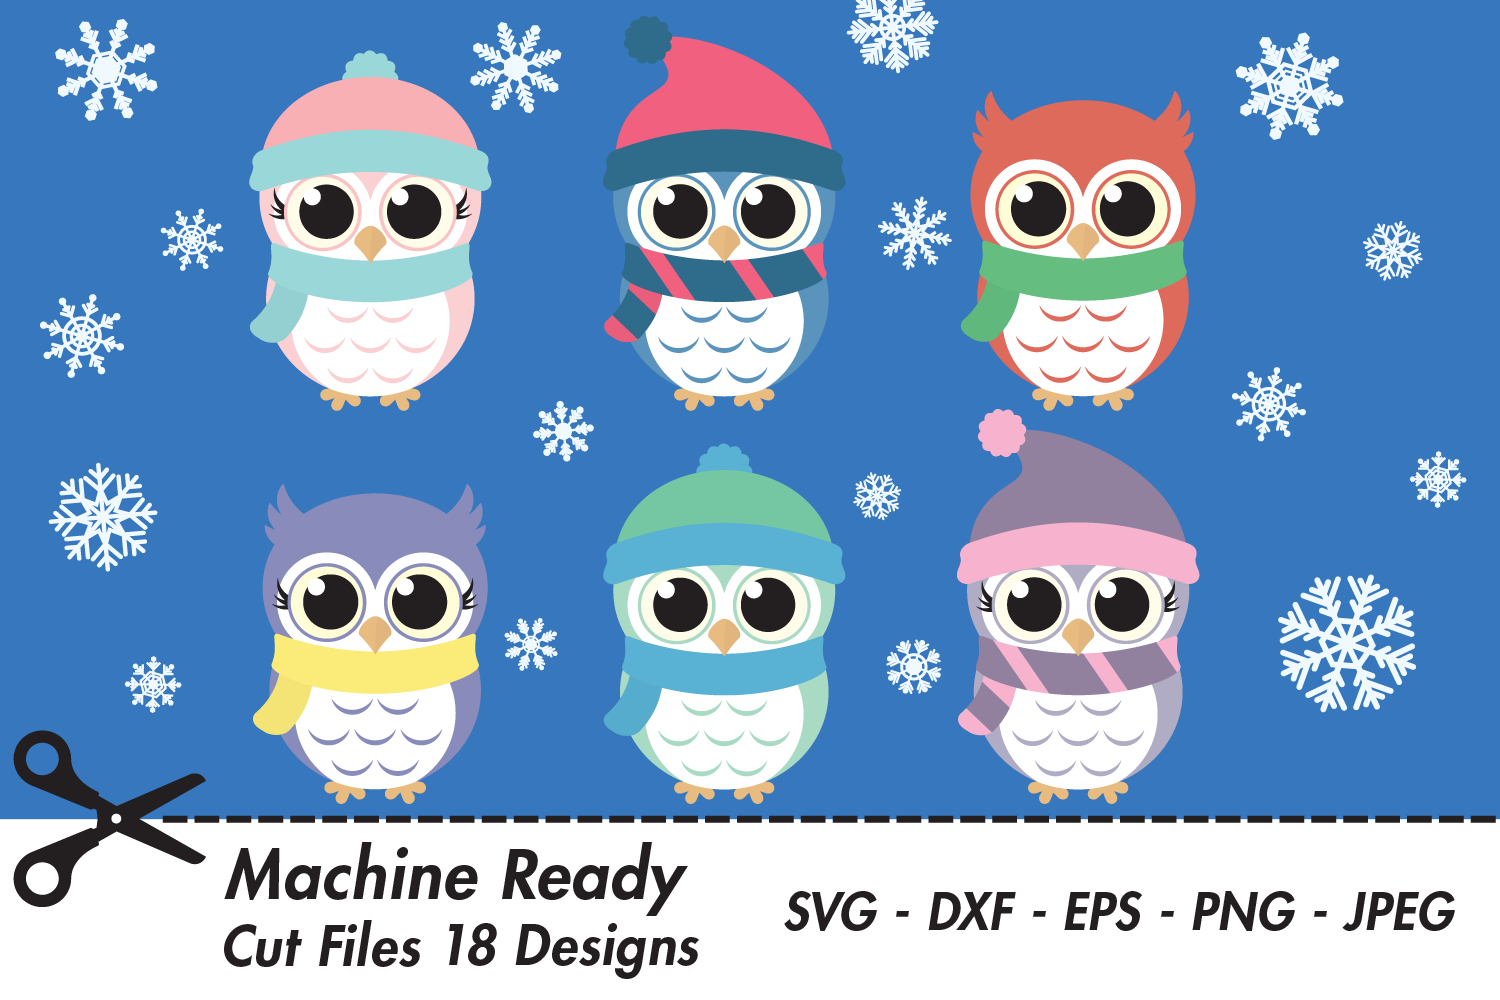 Download Free Cute Winter Owl And Snowflake Bundle Graphic By Captaincreative for Cricut Explore, Silhouette and other cutting machines.